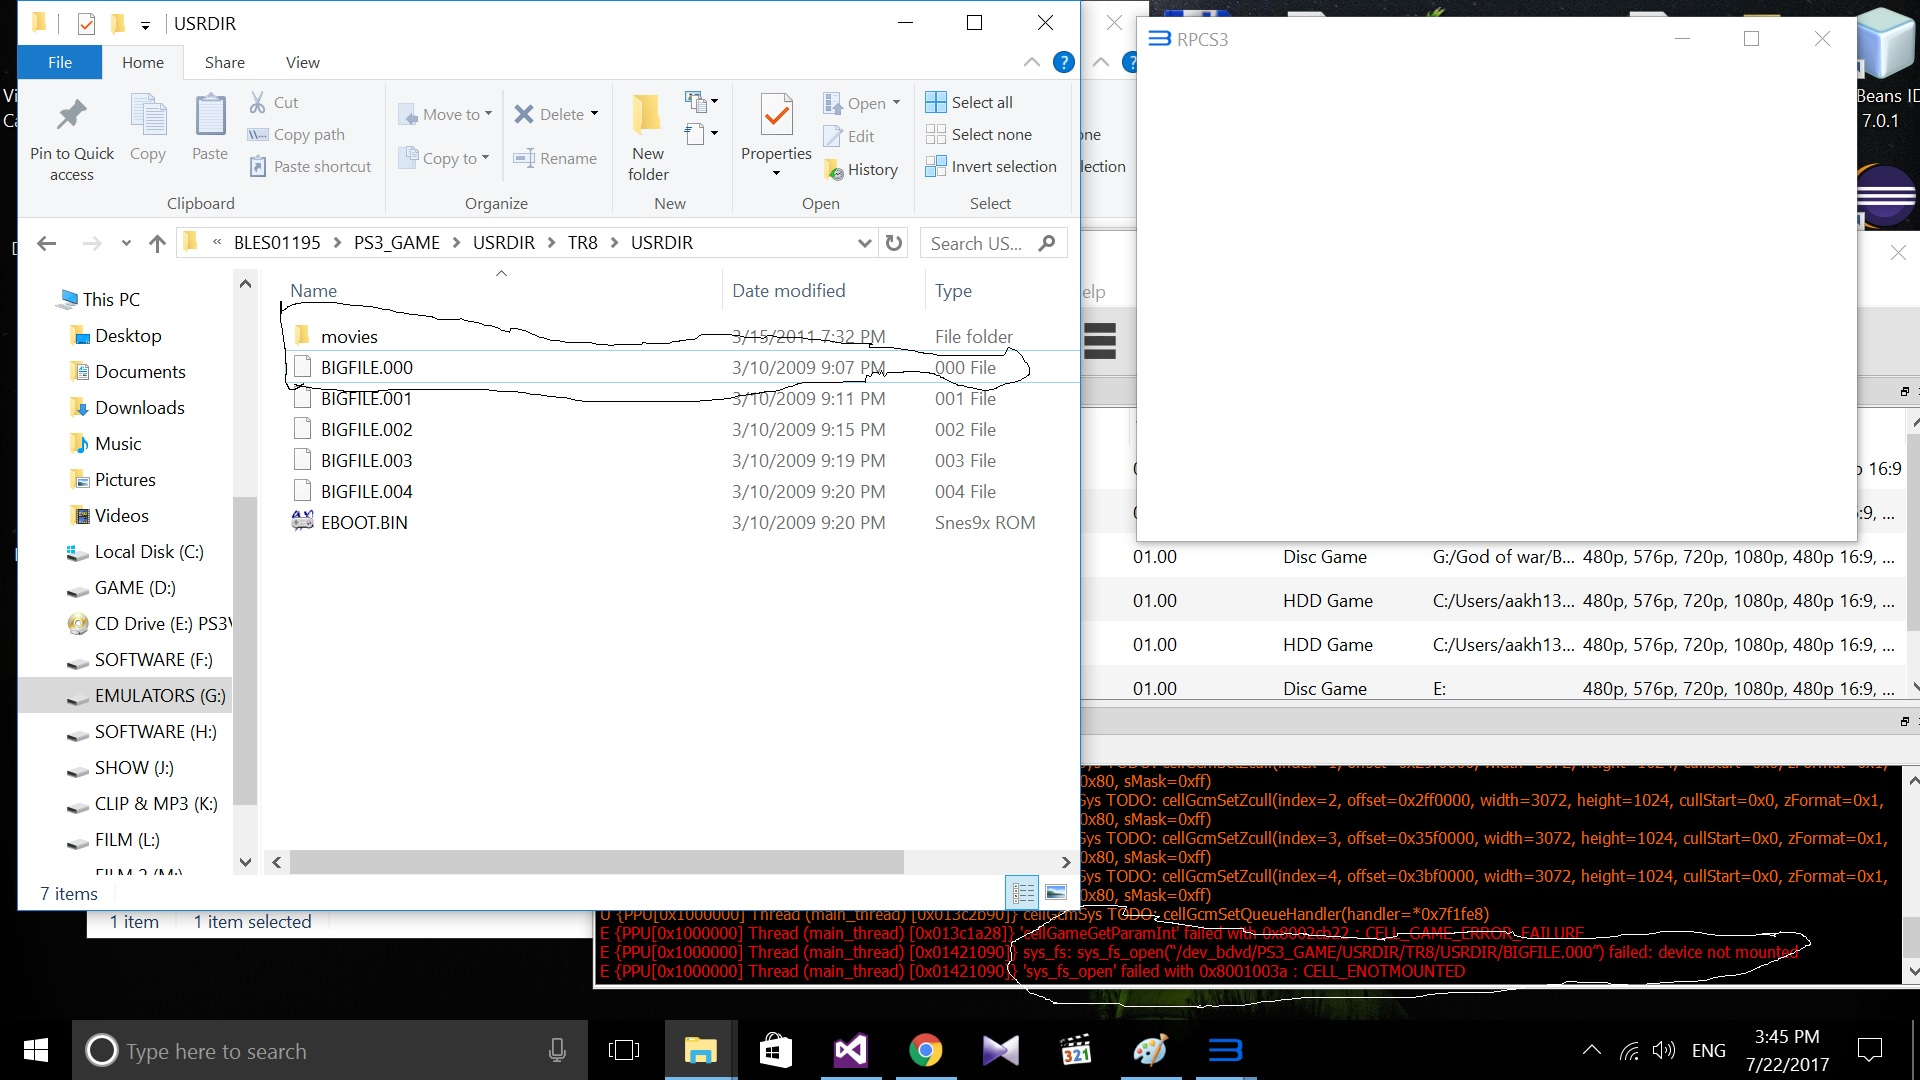 PARAM SFO not found when booting from a disc with several